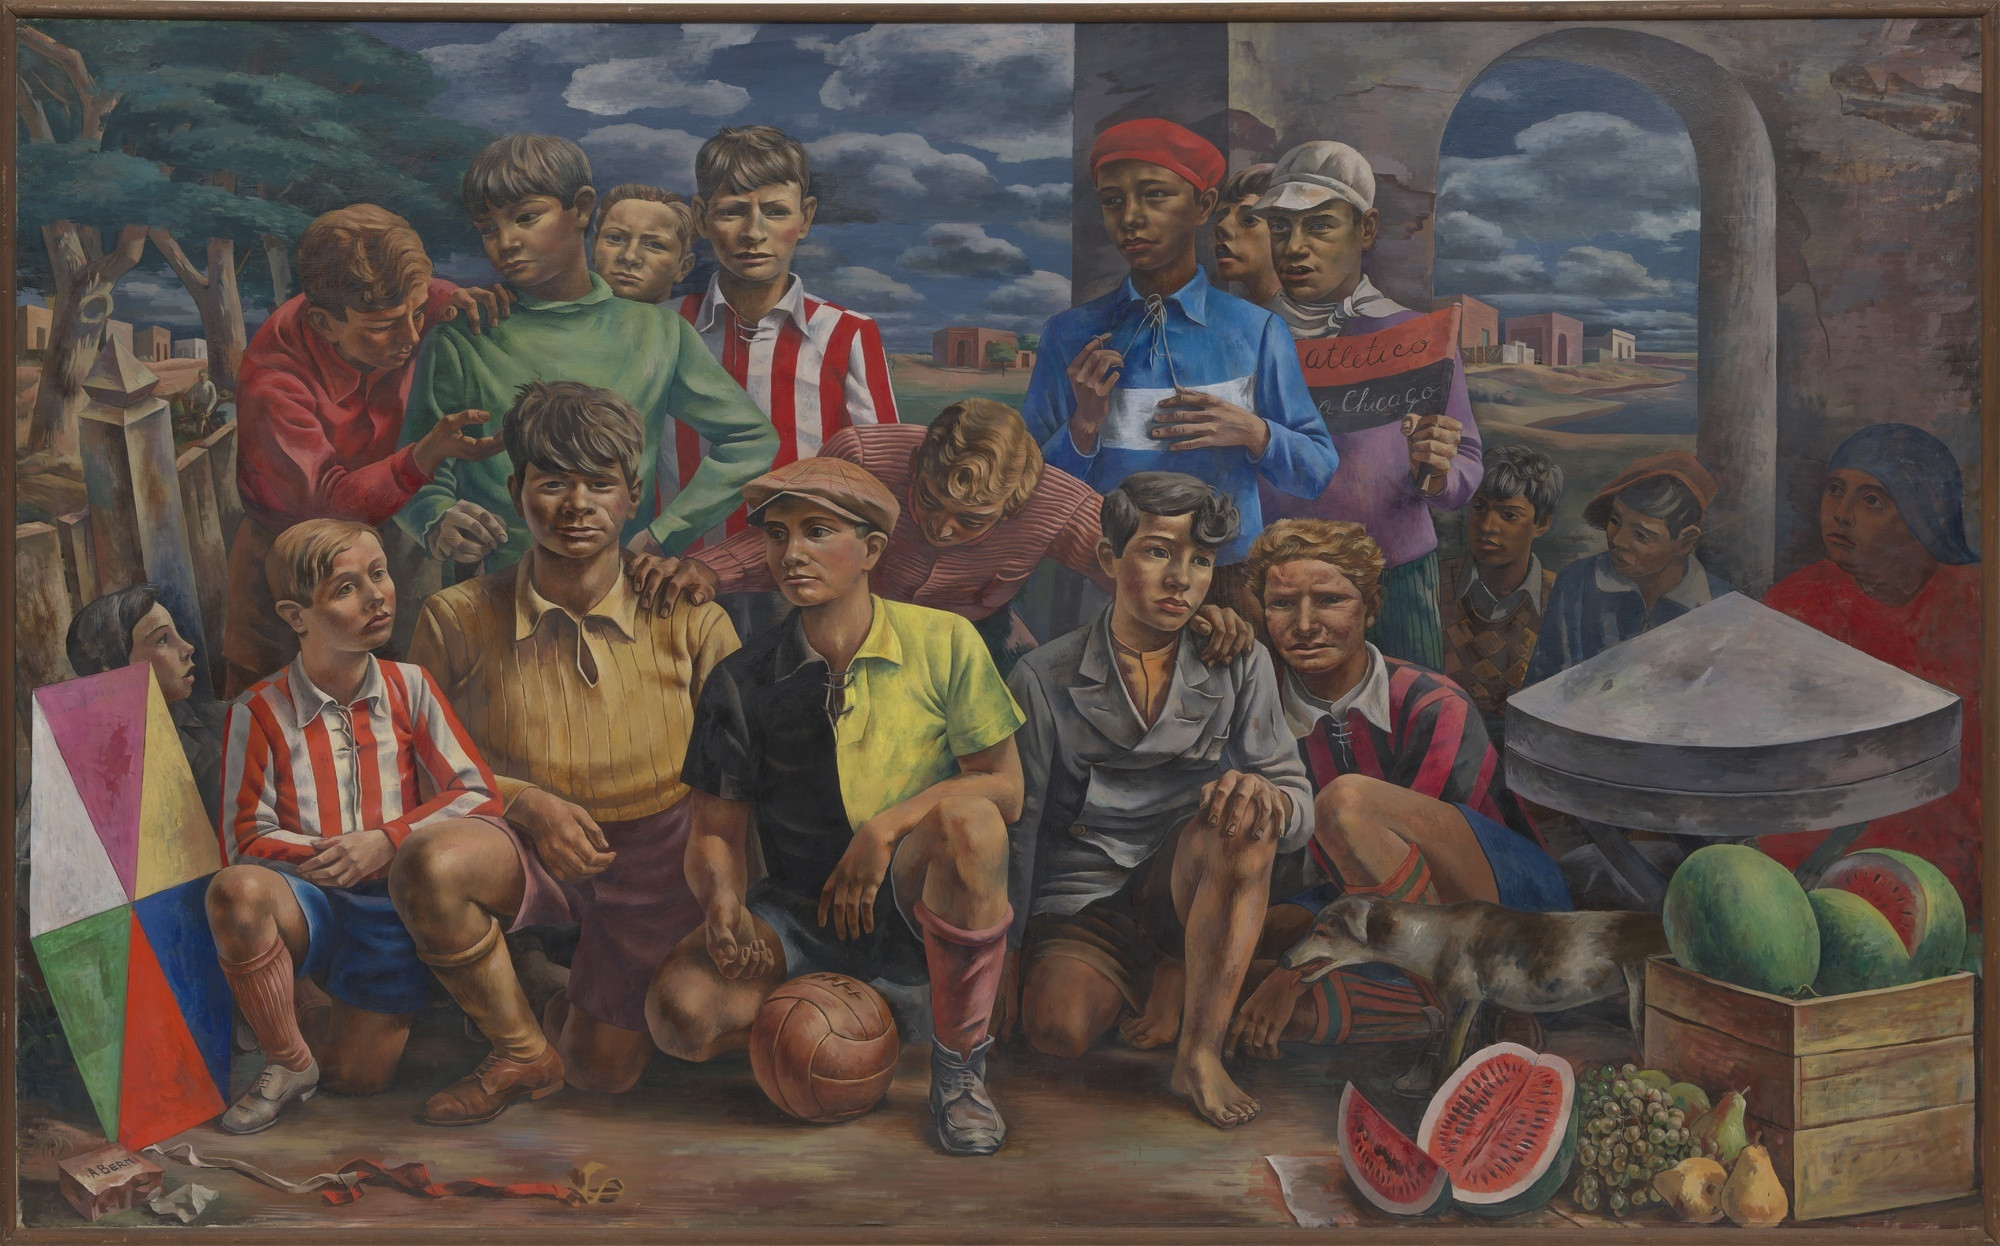 "Antonio Berni. New Chicago Athletic Club (Club atlético Nueva Chicago). 1937. Oil on canvas, 6' 3/4"" × 9' 10 1/4"" (184.8 × 300.4 cm). The Museum of Modern Art, New York. Inter-American Fund. © 2019 Fundación Antonio Berni and Luis Emilio De Rosa, Argentina"